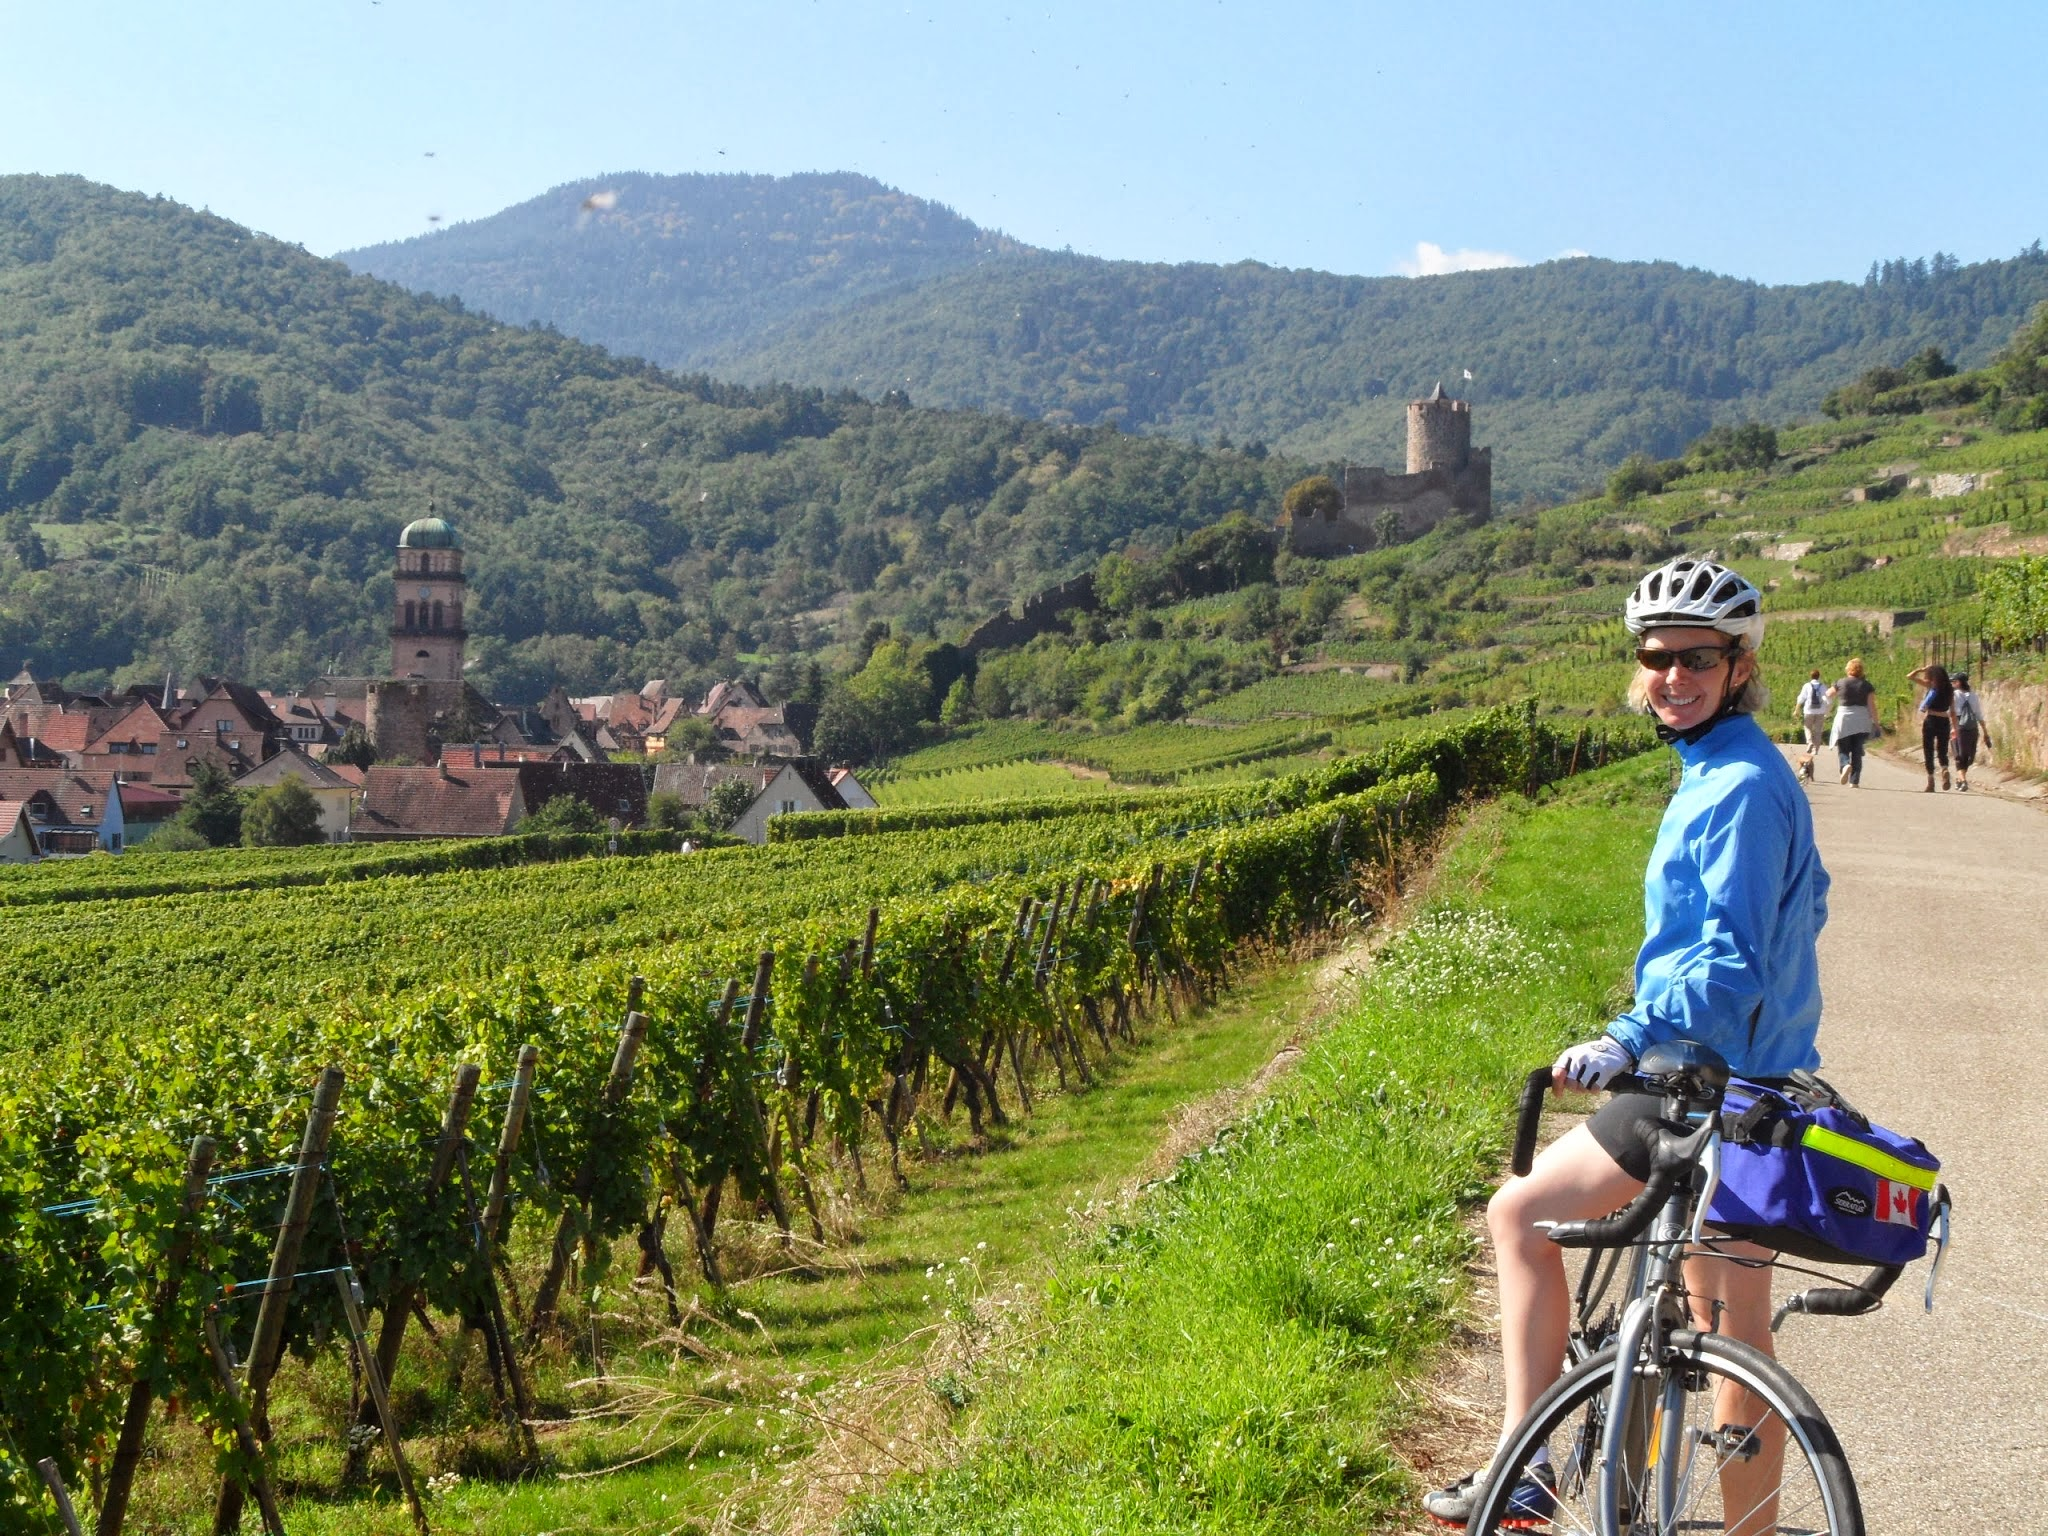 Cyclomundo rider on Route des Vins